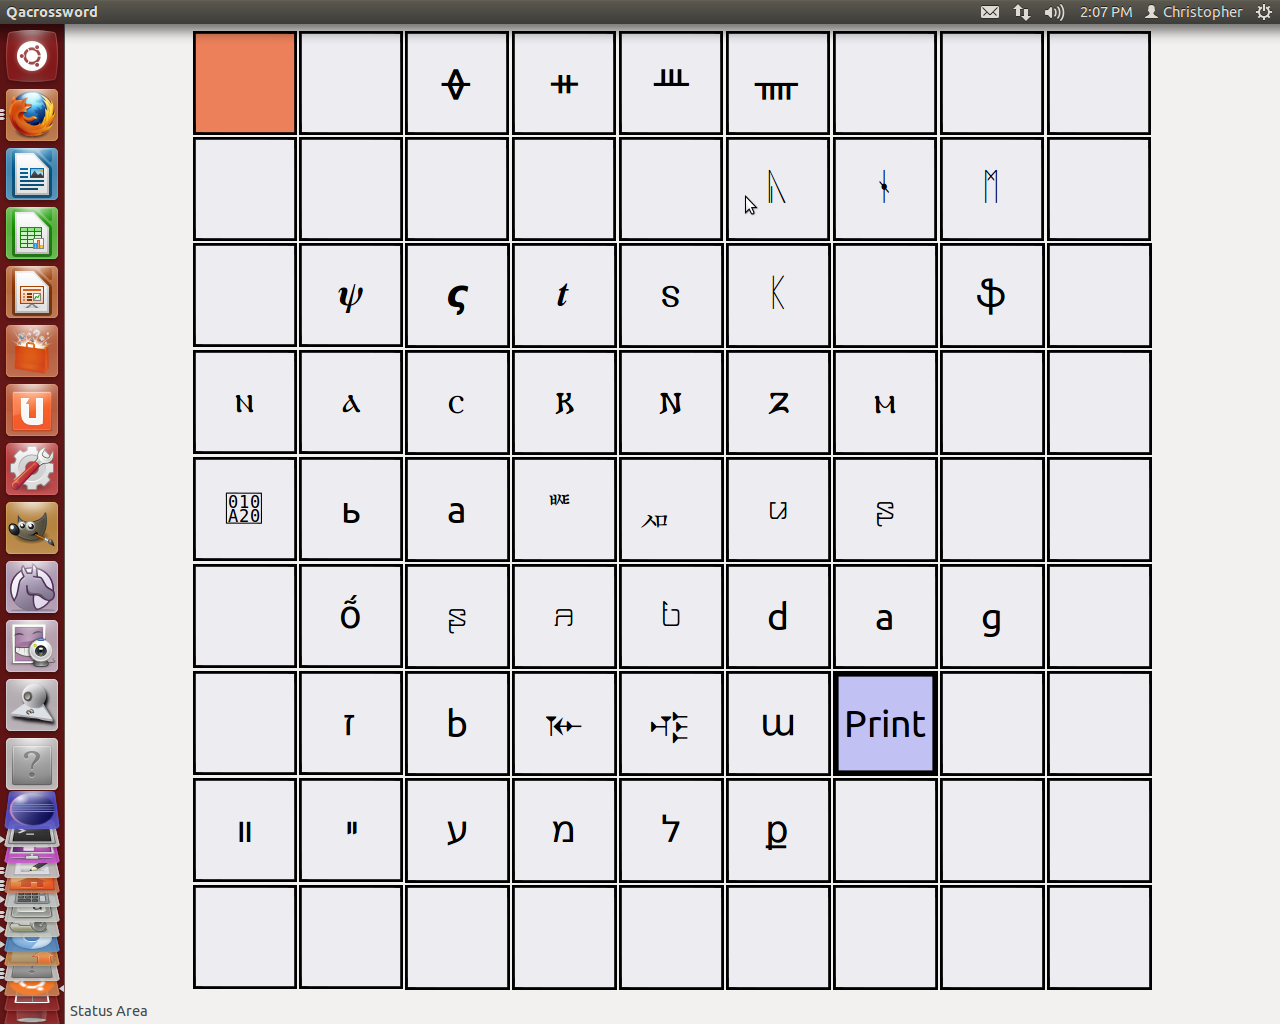 Workspace: Pygtk 3+ gui app using pango for character rendering